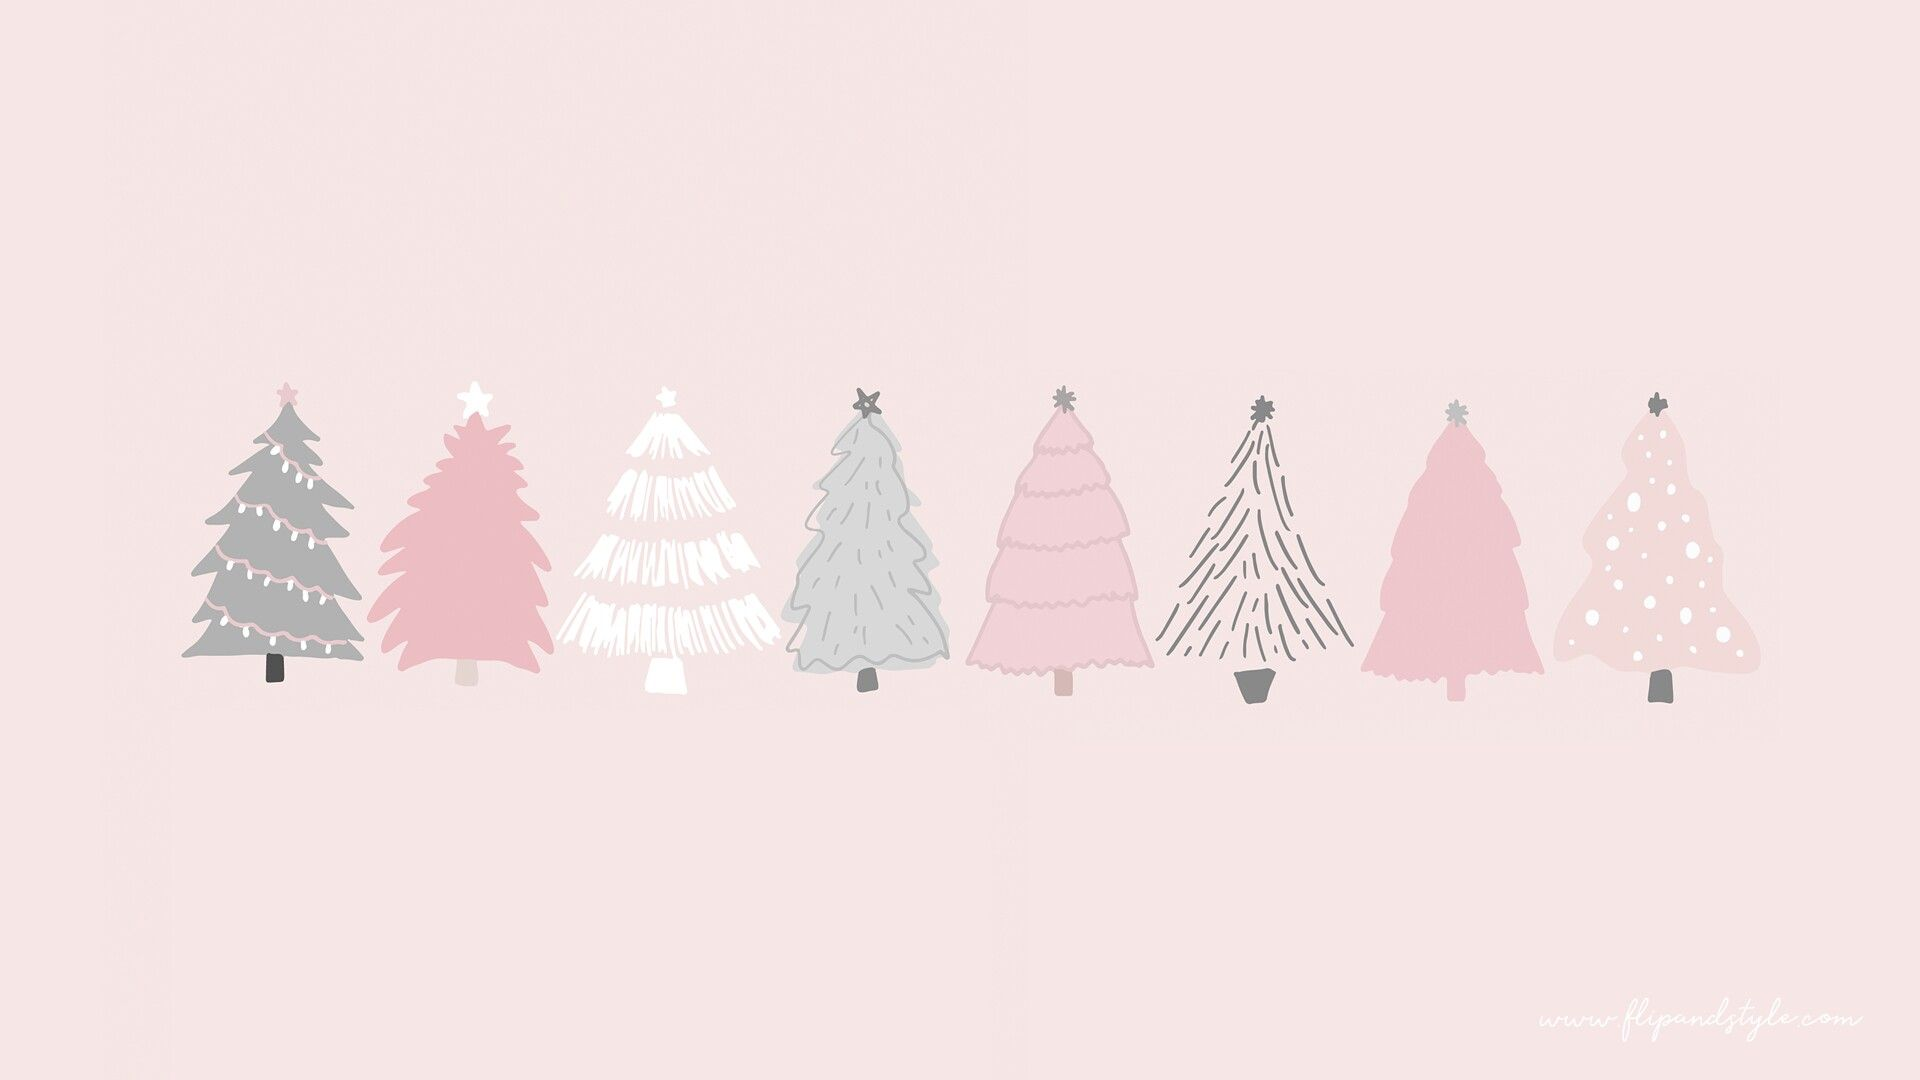 meaningful christmas wallpaper aesthetic design ideas for your computer!